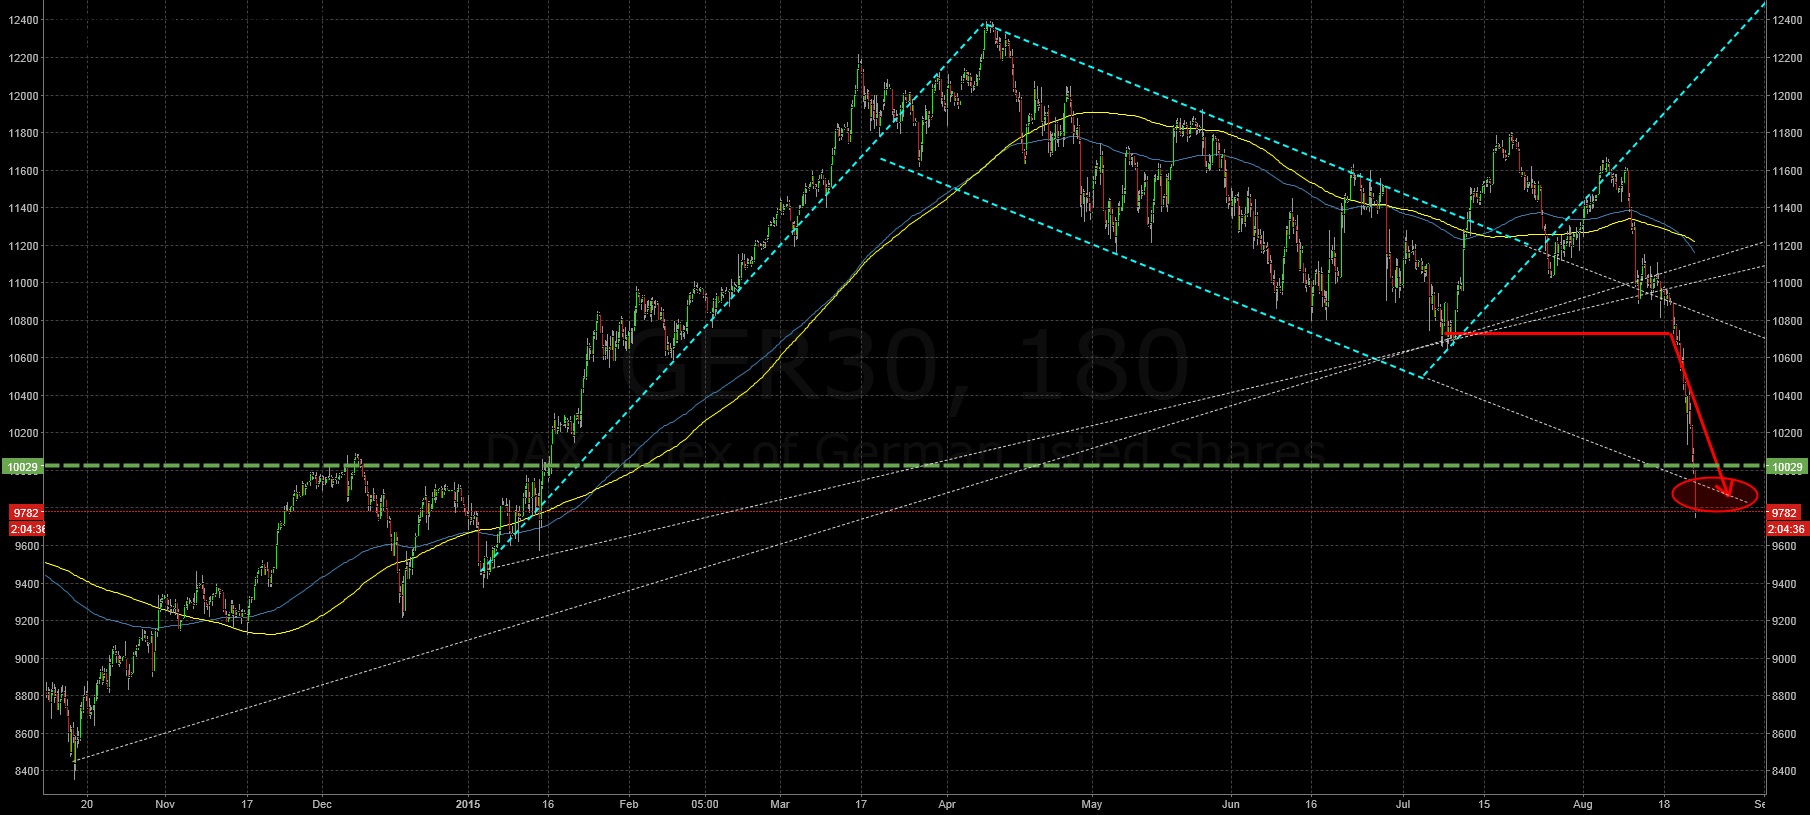 The (un)exspected 1000 points downwave has become reality